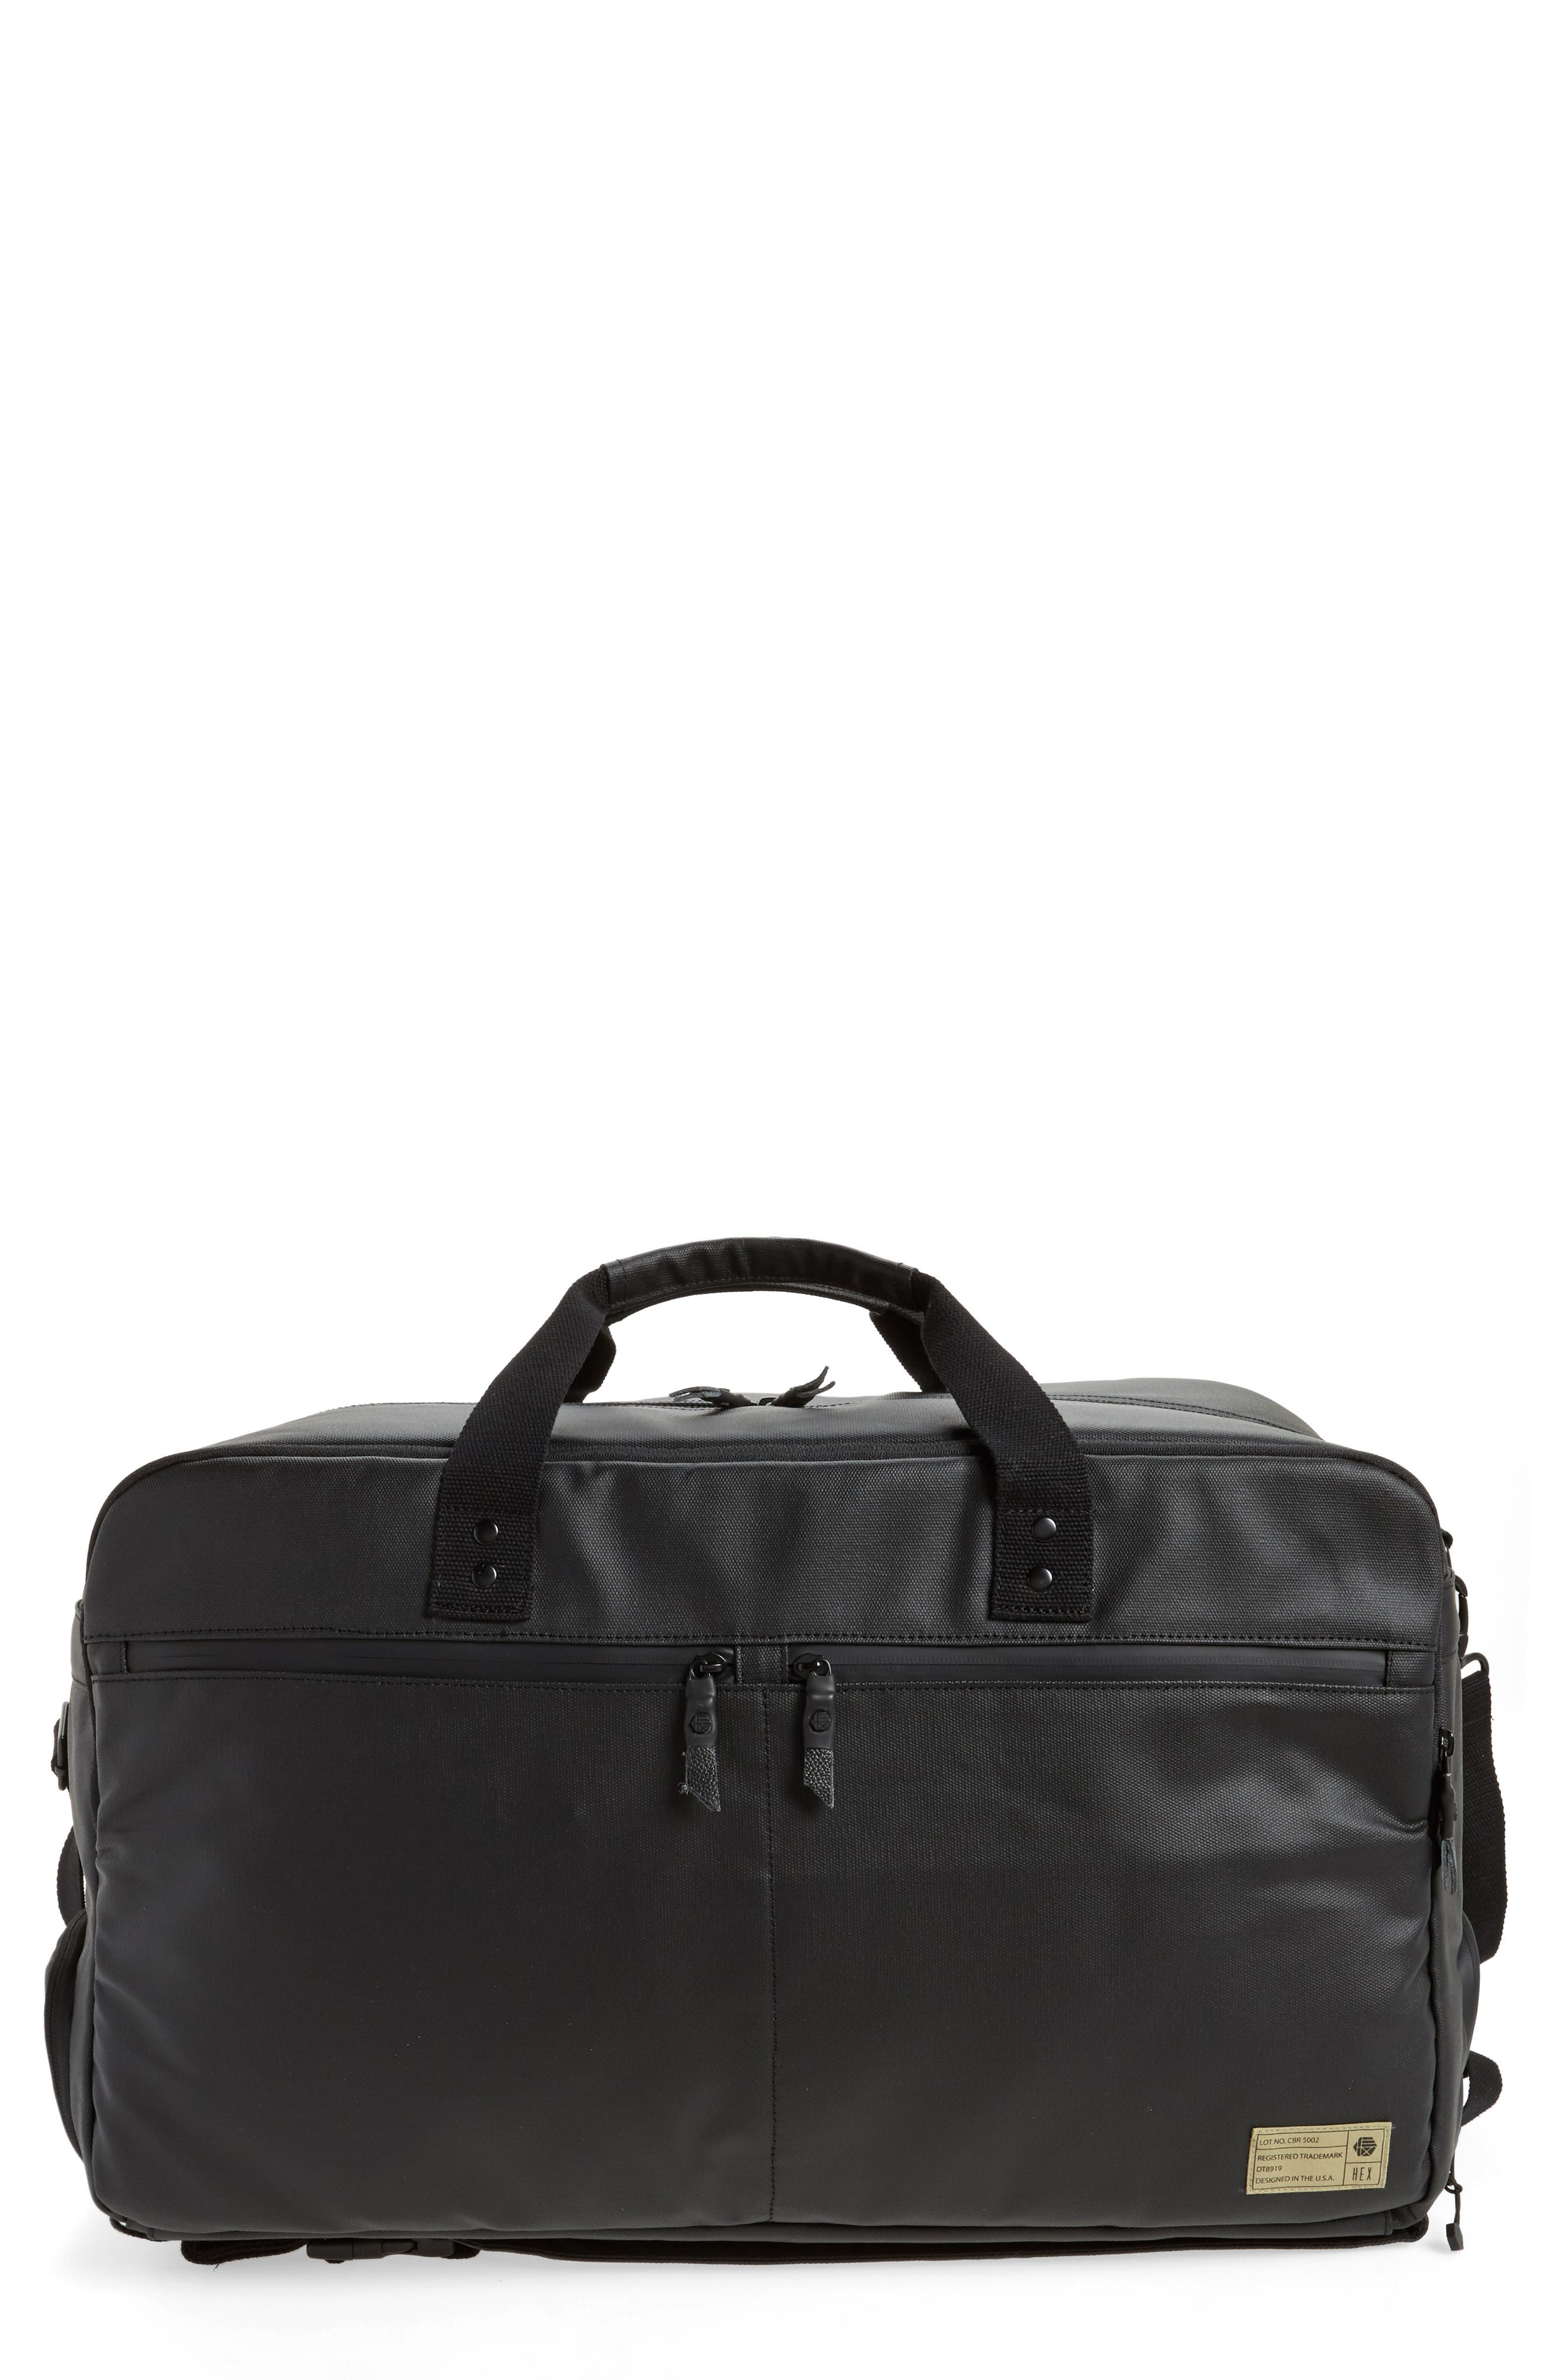 HEX Convertible Duffel Bag